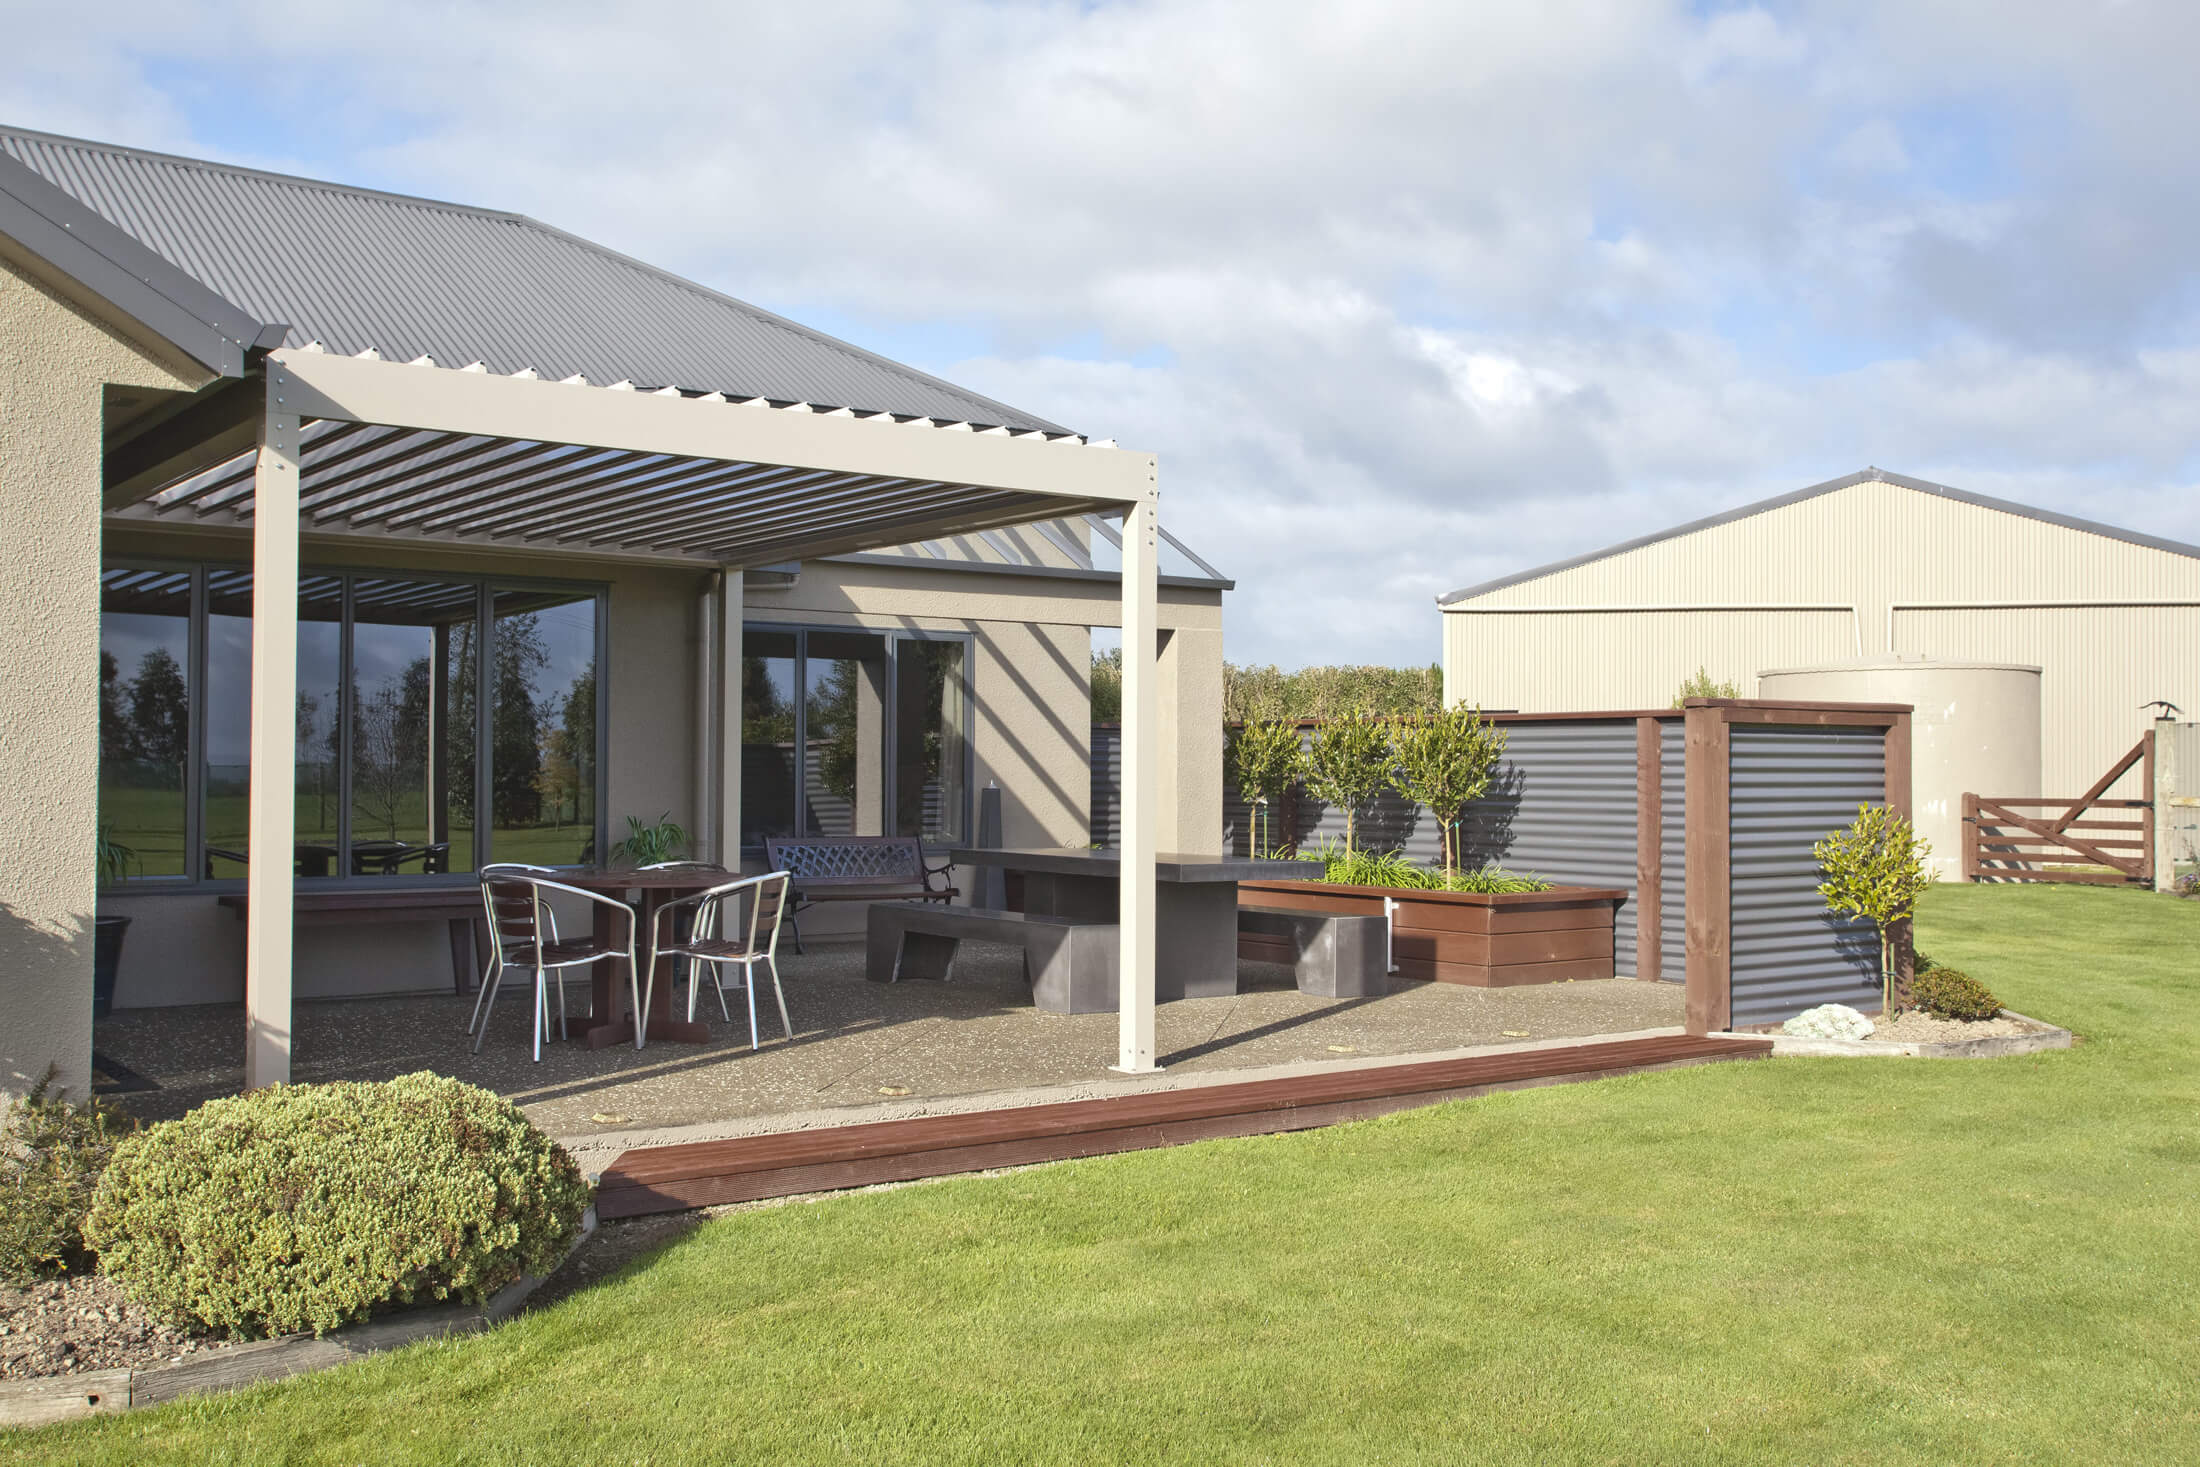 Southland residence project - gallery image 5